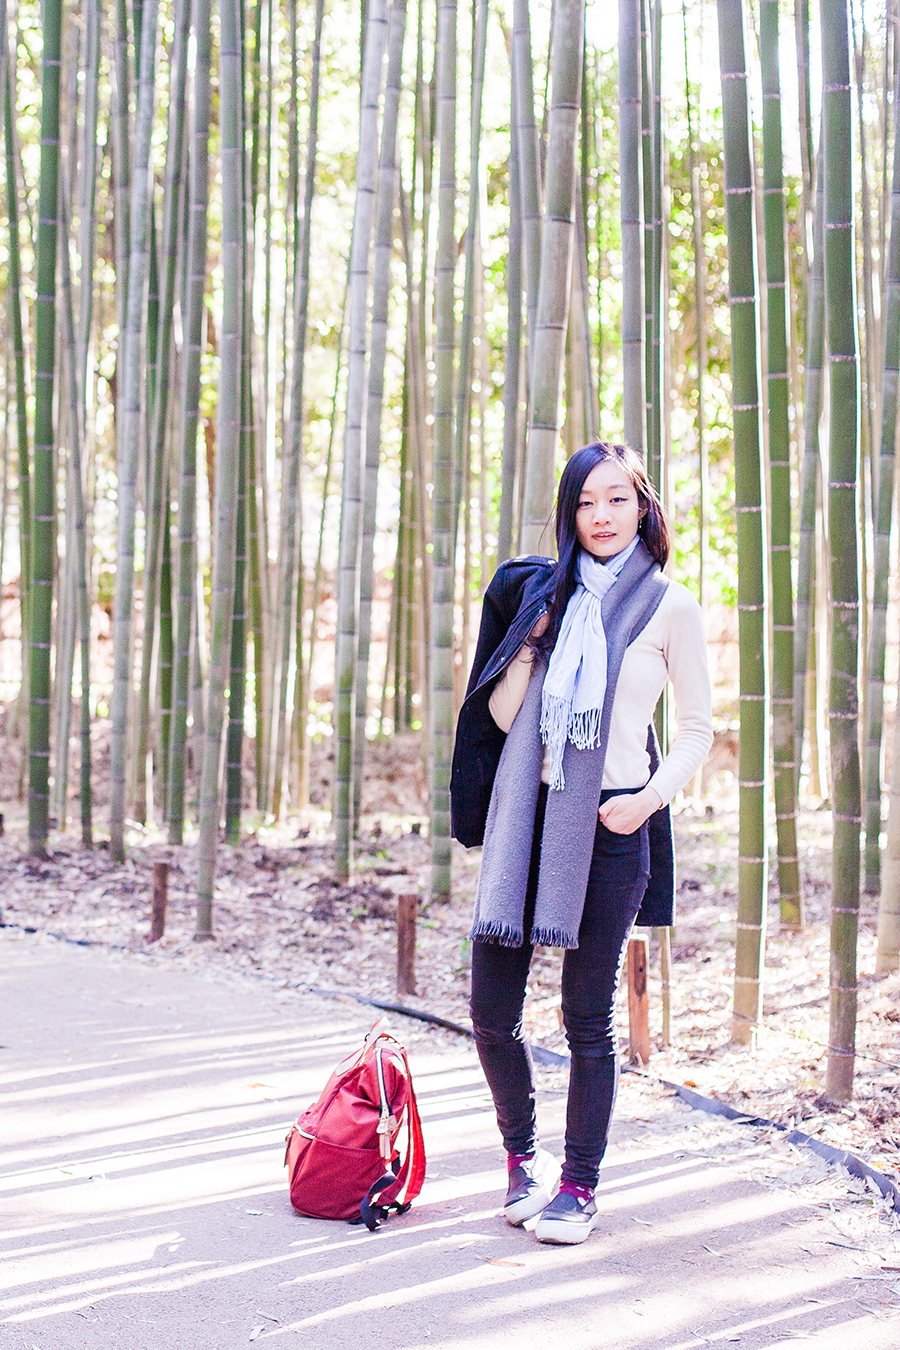 OOTD among bamboo shoots at Arashiyama, Kyoto, Japan.